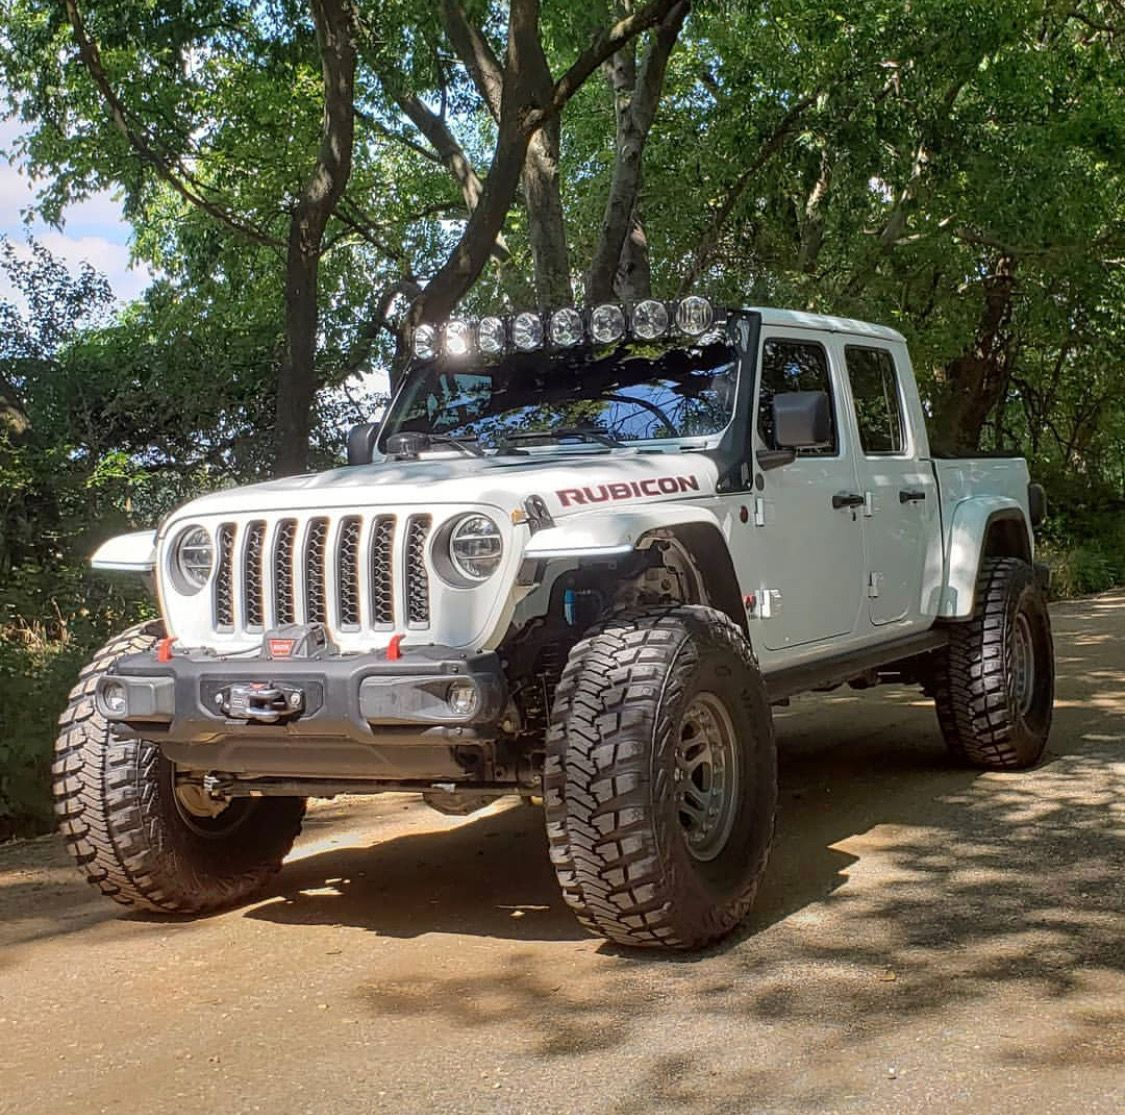 Lifted 2020 Jeep Gladiator Rubicon In 2020 Jeep Gladiator Badass Jeep Jeep